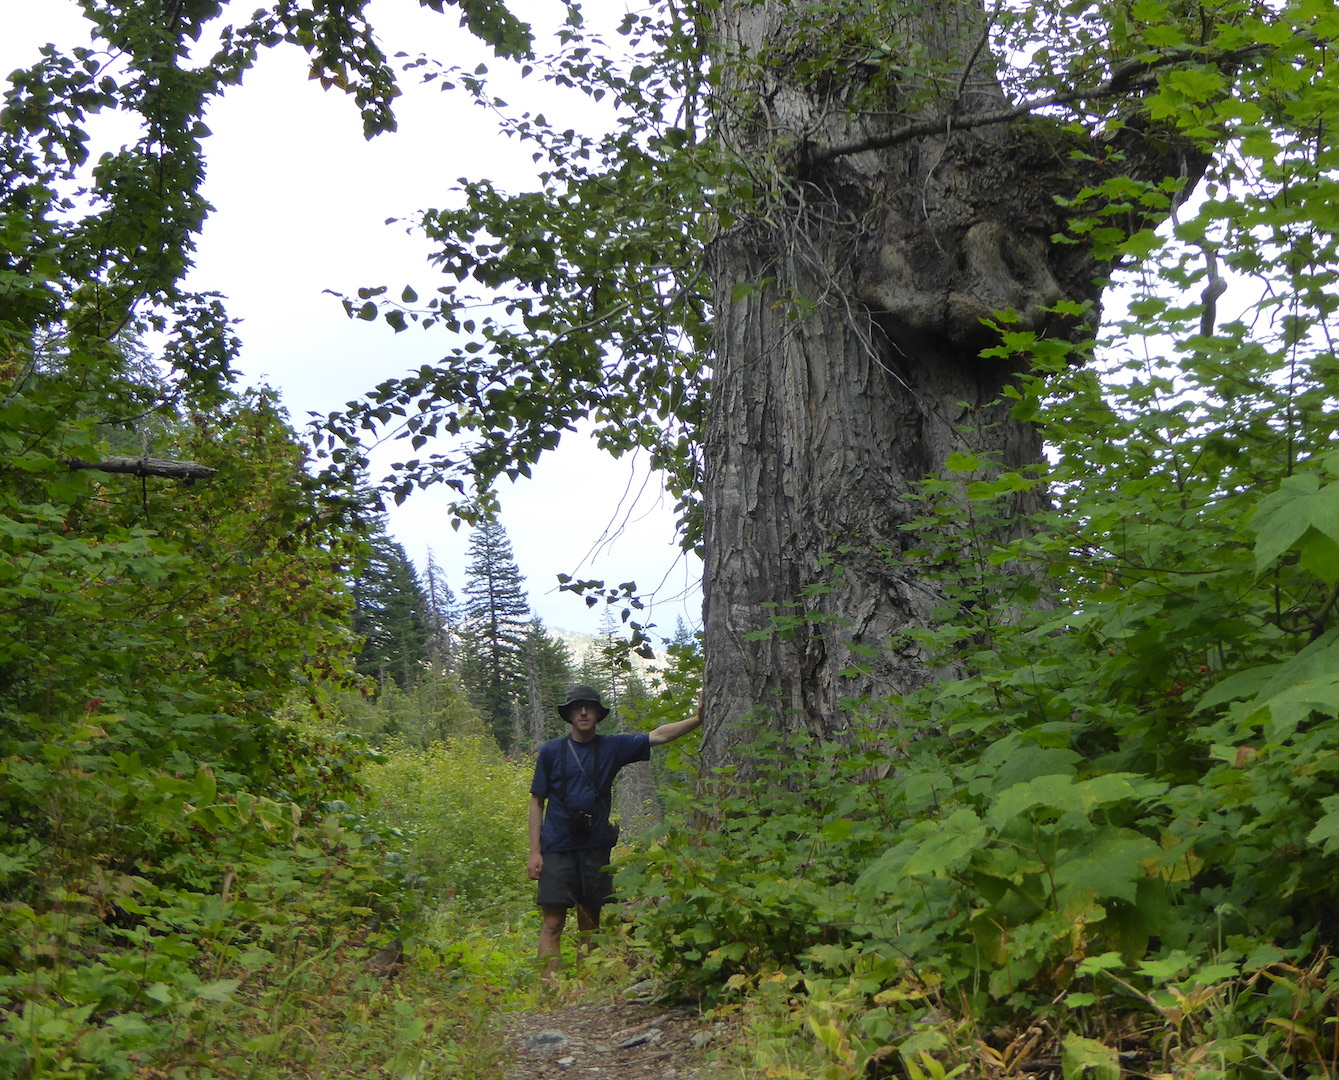 person standing next to large deciduous tree